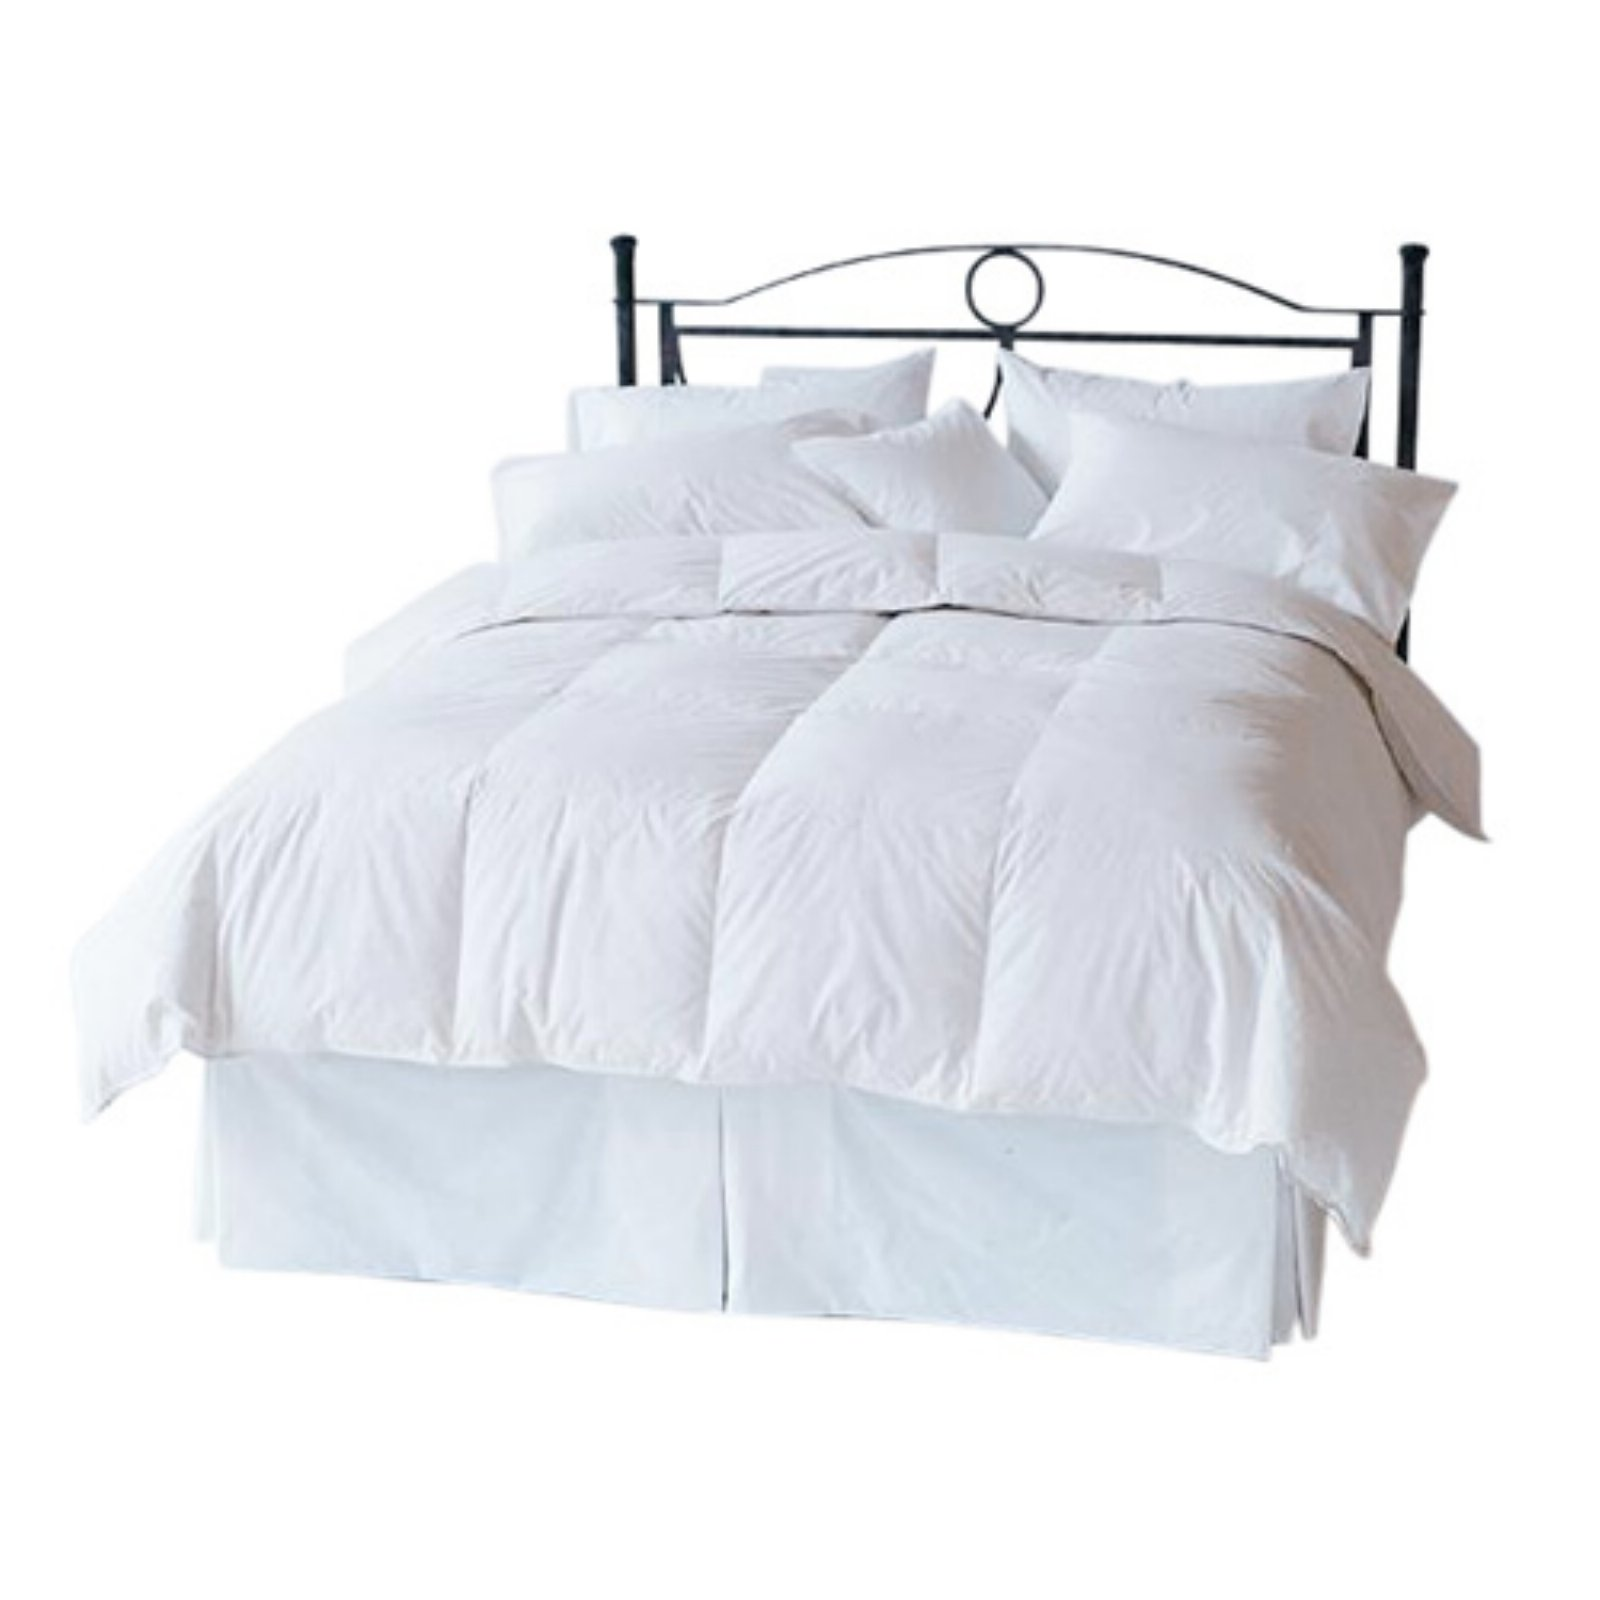 Daniadown Alpine Down Comforter - Winter Weight